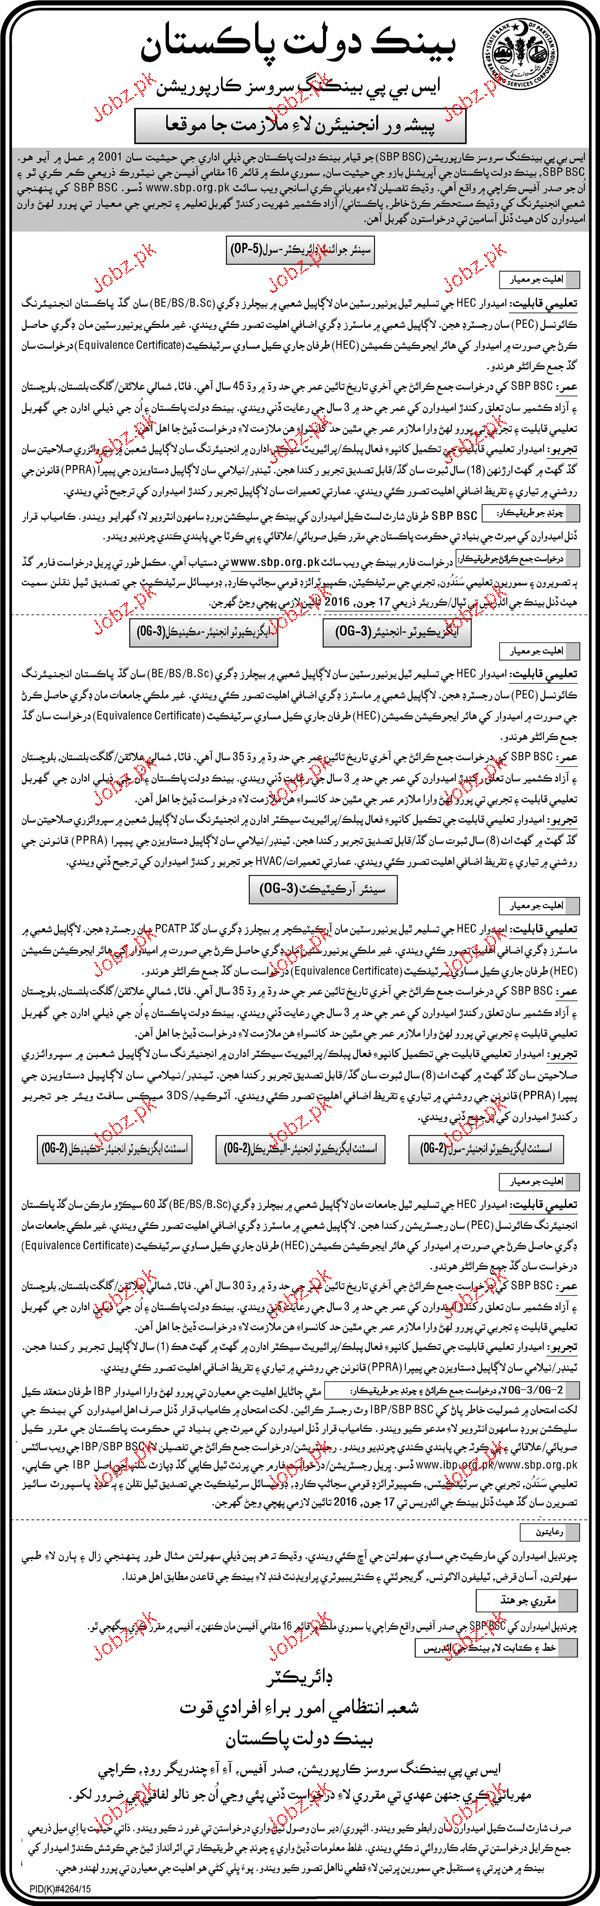 Senior Joint Director, Executive Engineers Job Opportunity